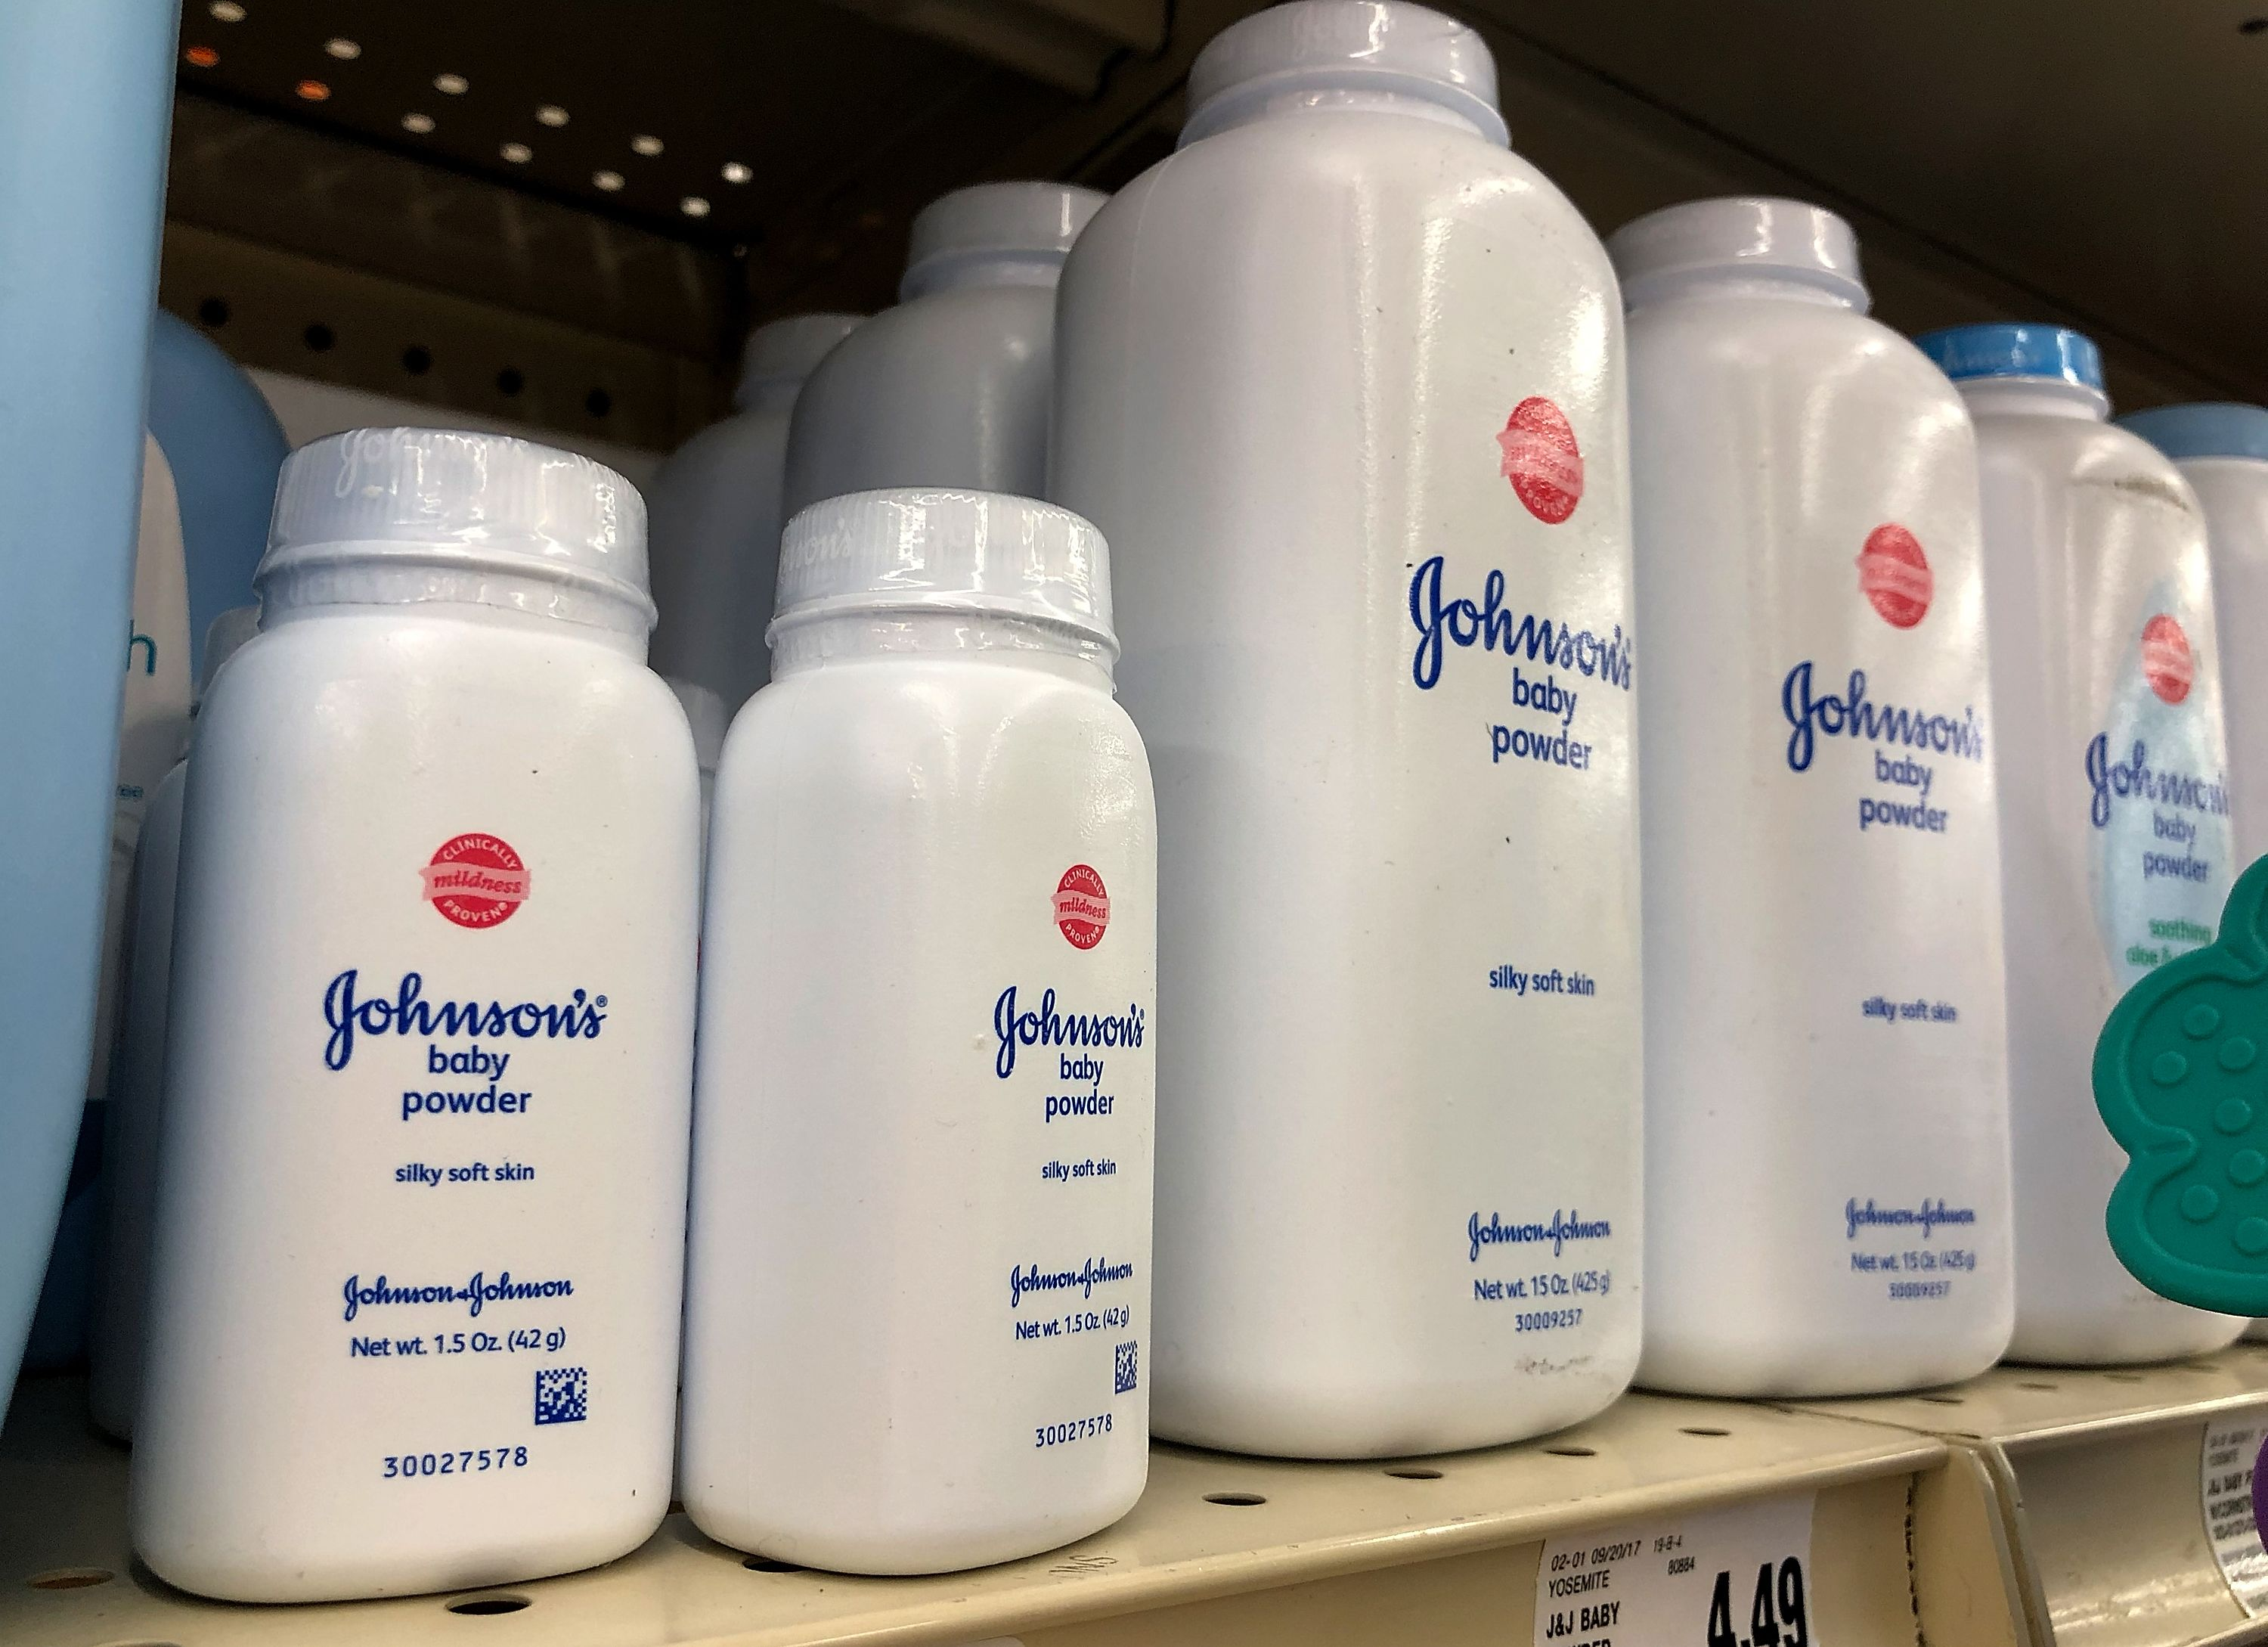 Judge denies J&J's request to transfer talc lawsuits to federal court